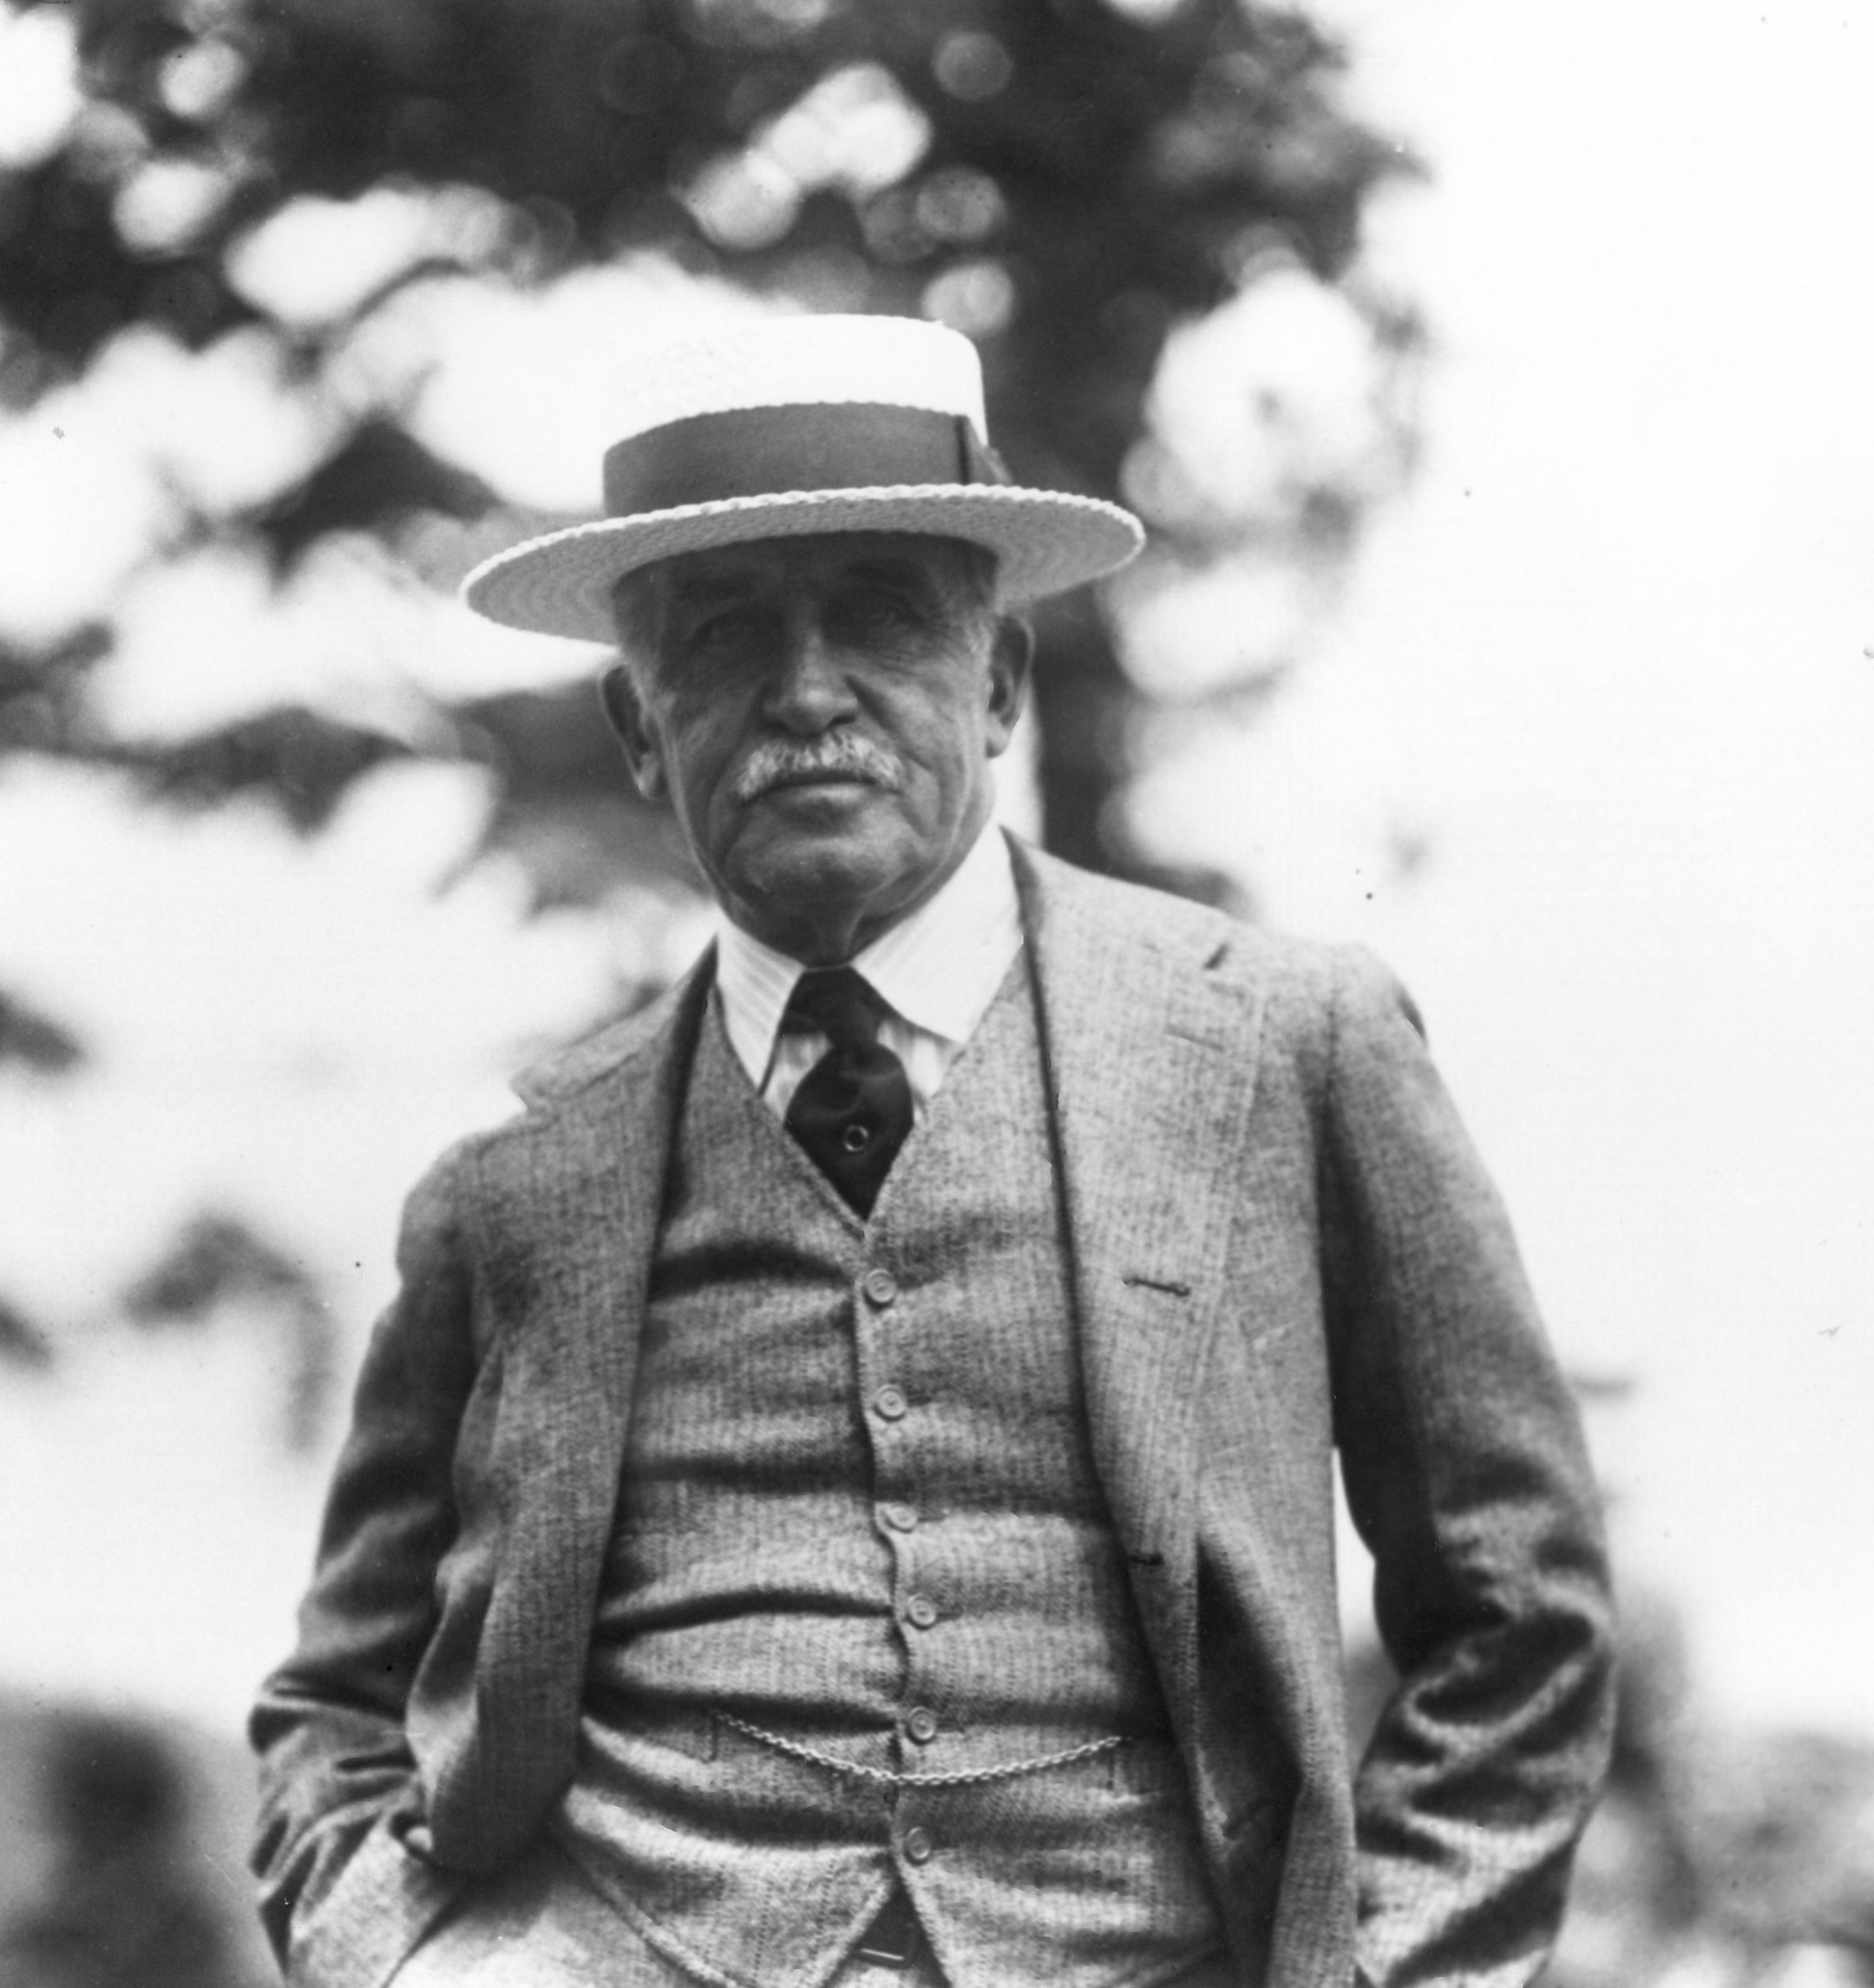 J. Howard Lewis (Keeneland Library Cook Collection/Museum Collection)